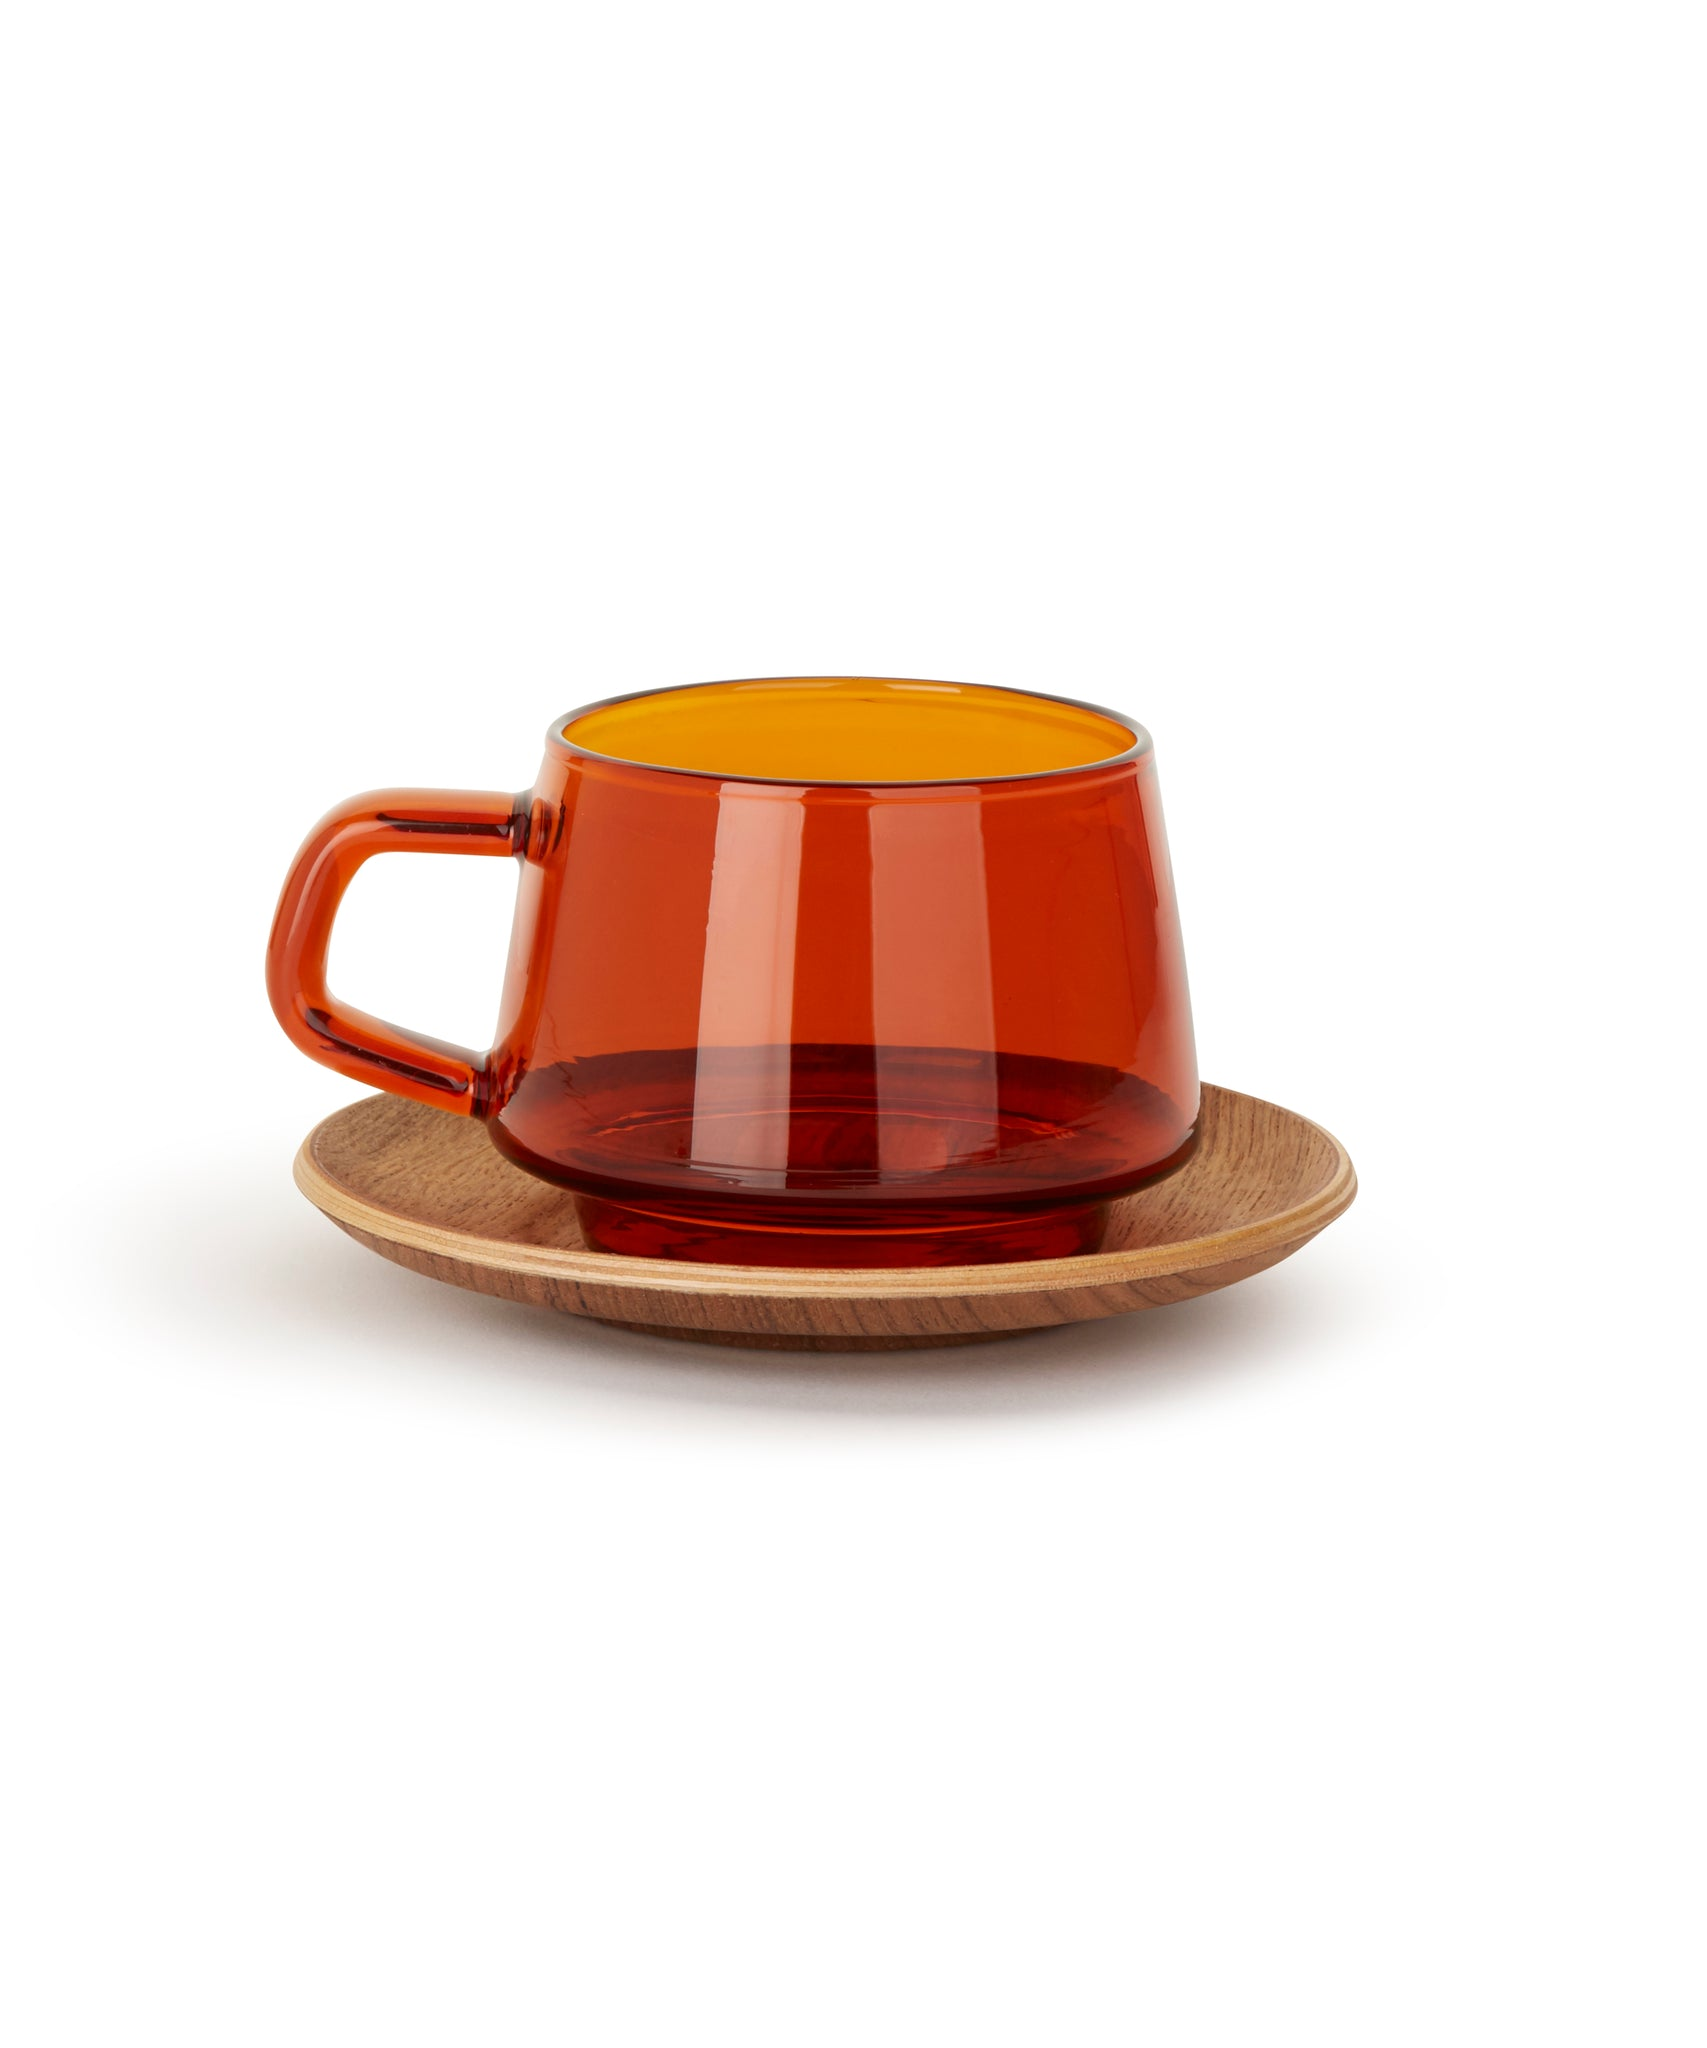 Sepia Cup & Saucer by Kinto